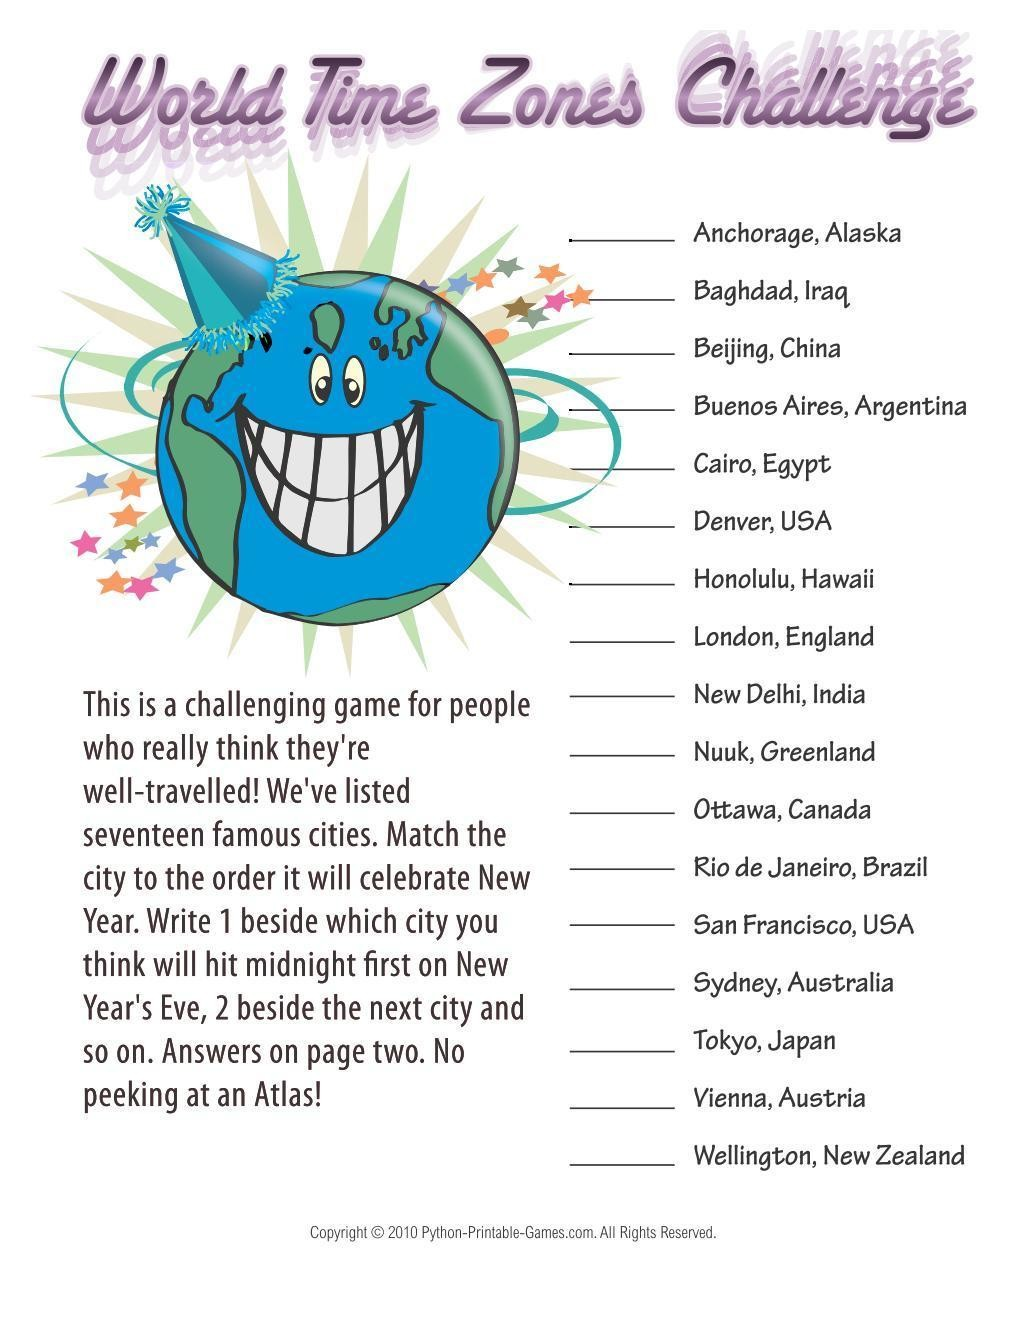 New Year's Eve: World Time Zones Challenge